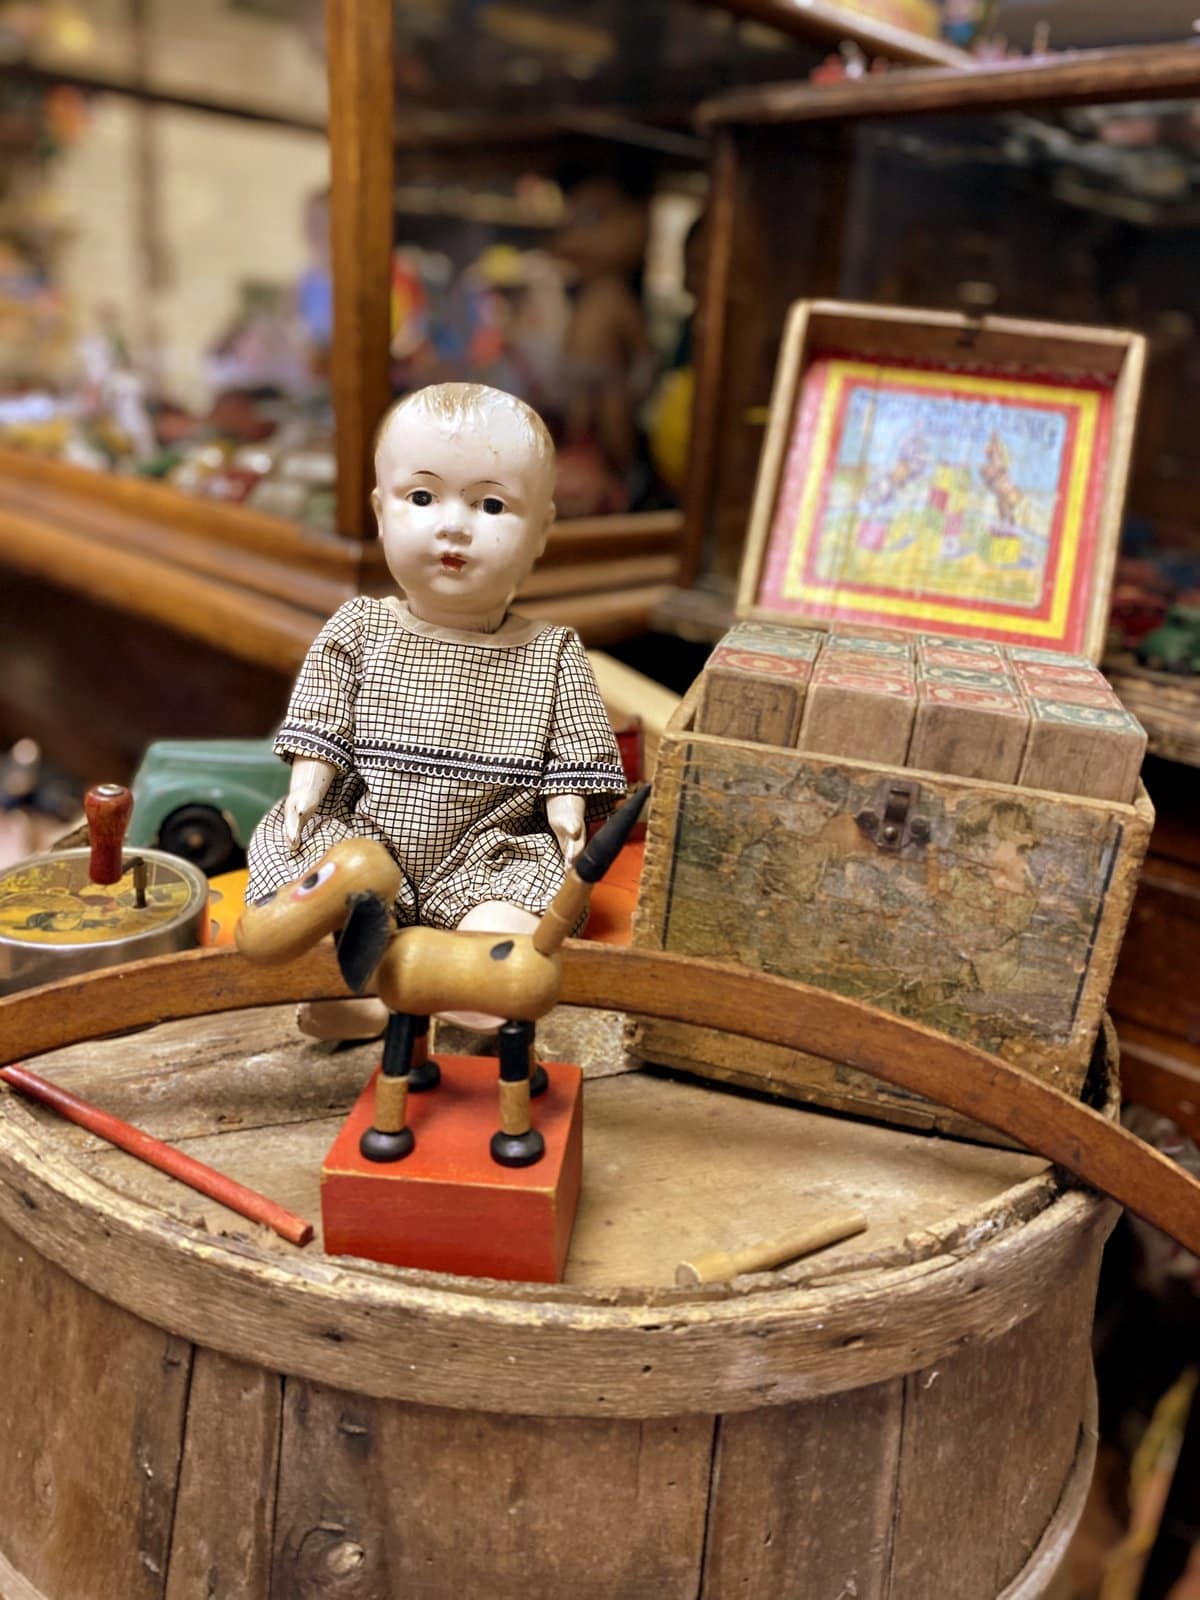 Antique toys at a vintage shop - Doll, rolling hoop, blocks and more